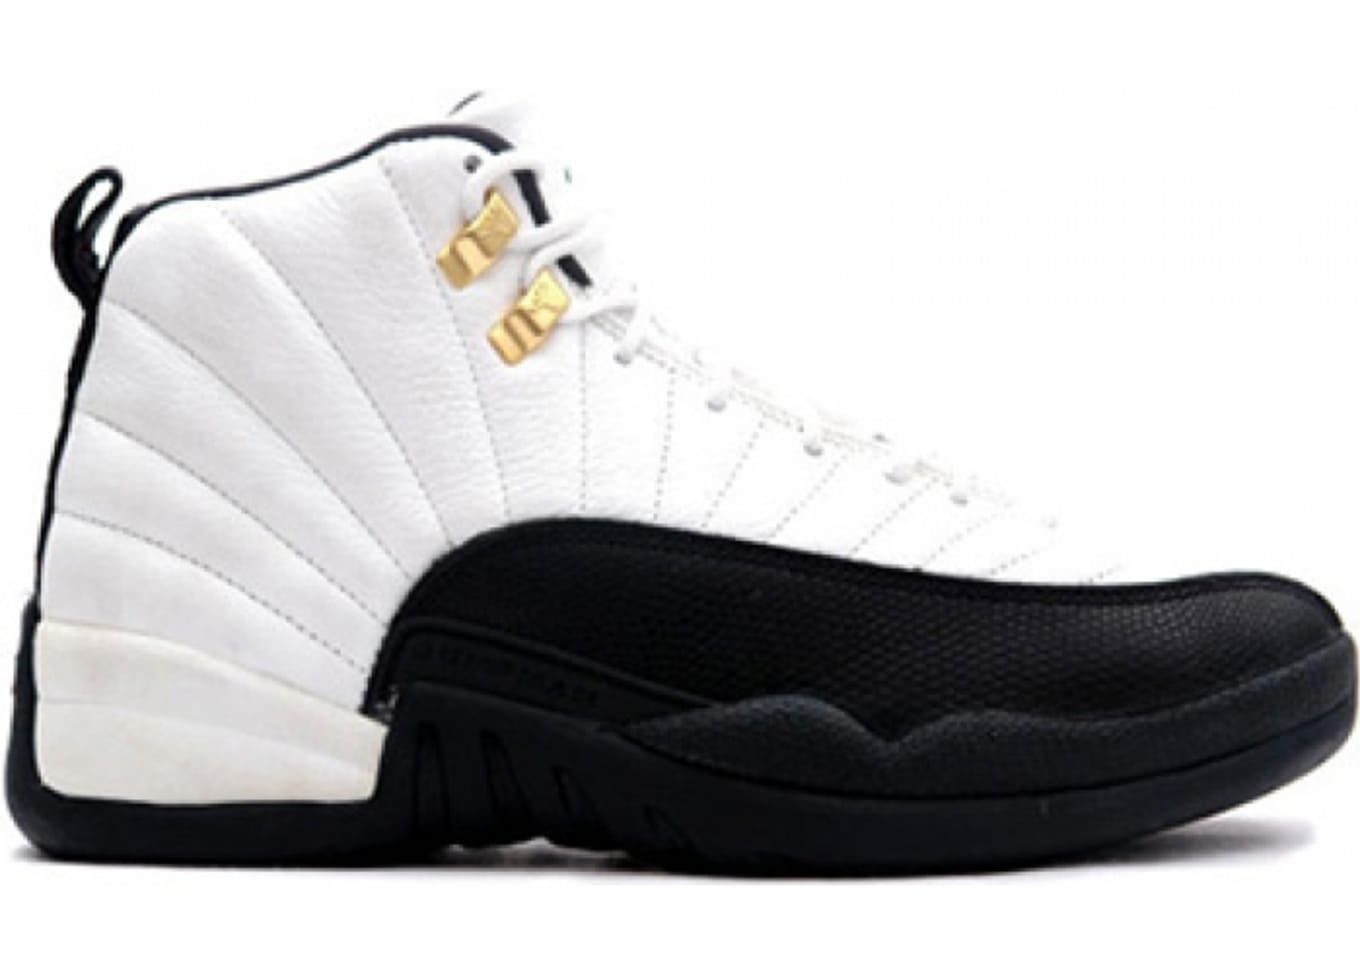 ae003c589c4e5c Air Jordan 12 Price Guide